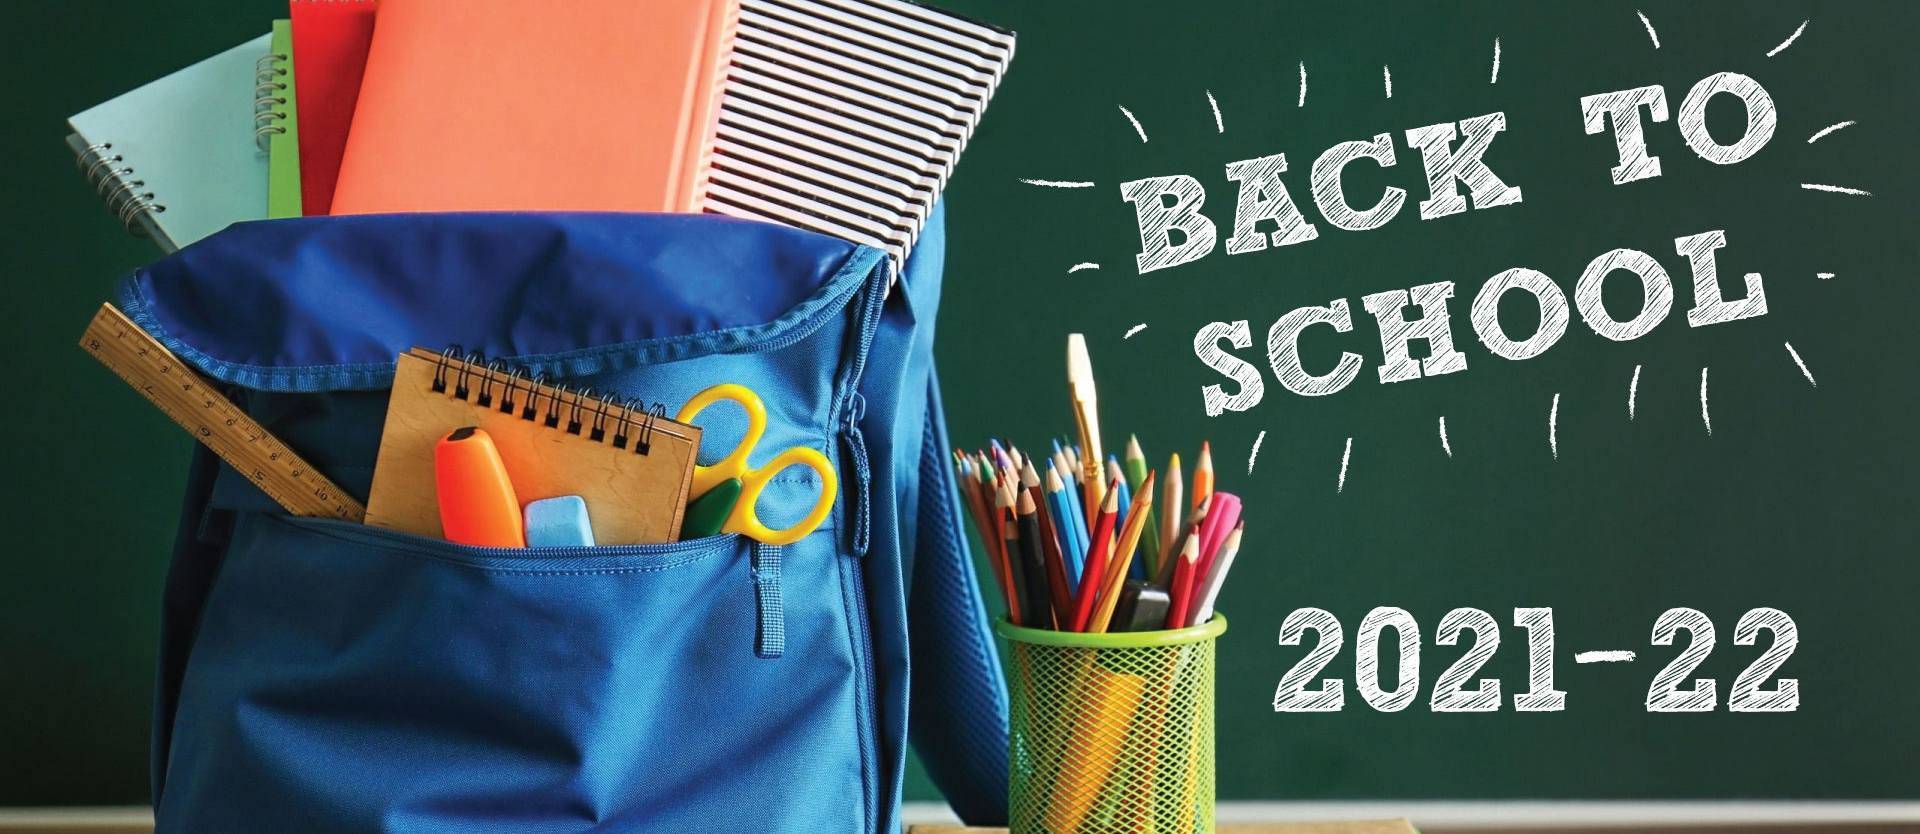 photo of back to school 2021-22